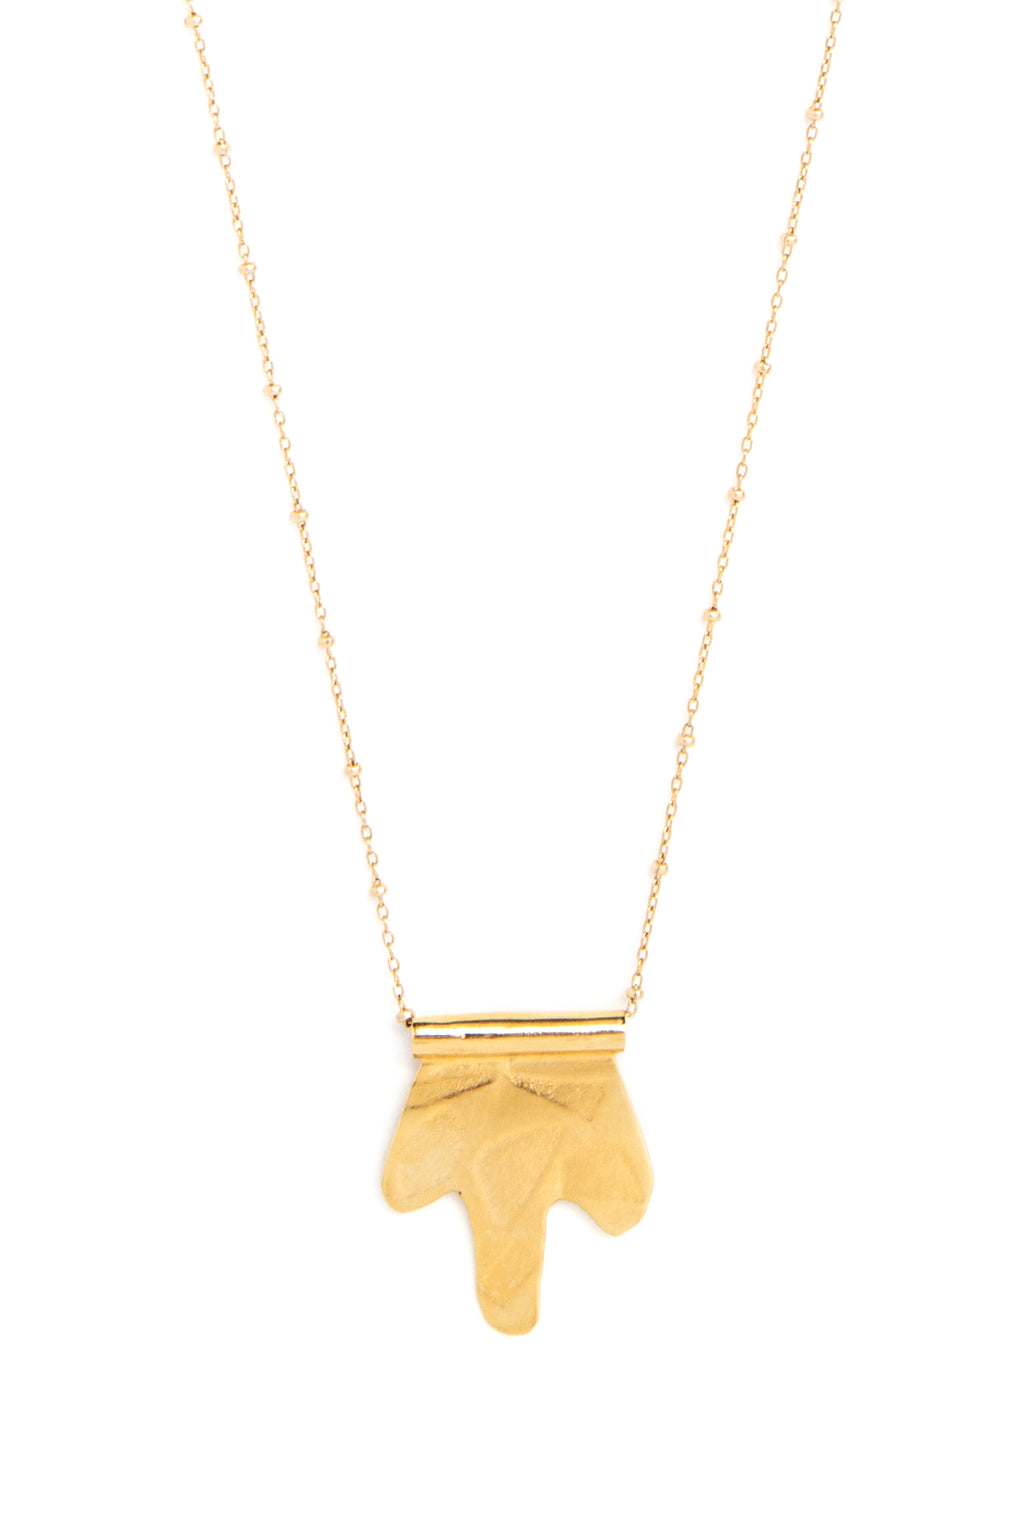 CAT LUCK Golden Shapes Necklace